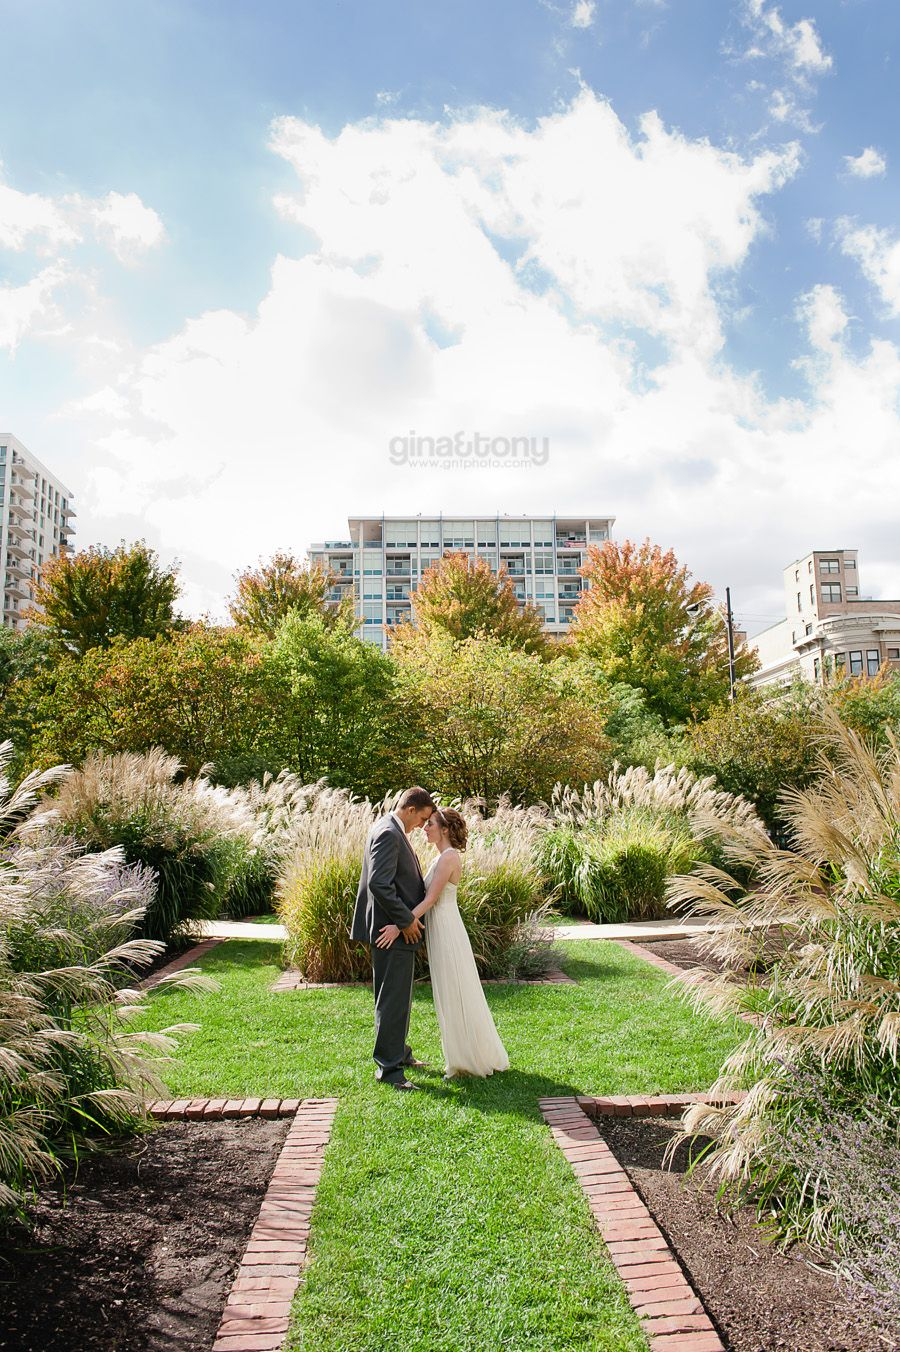 Chicago Women 39 S Park And Gardens Prairie District Wedding Venue Pinterest